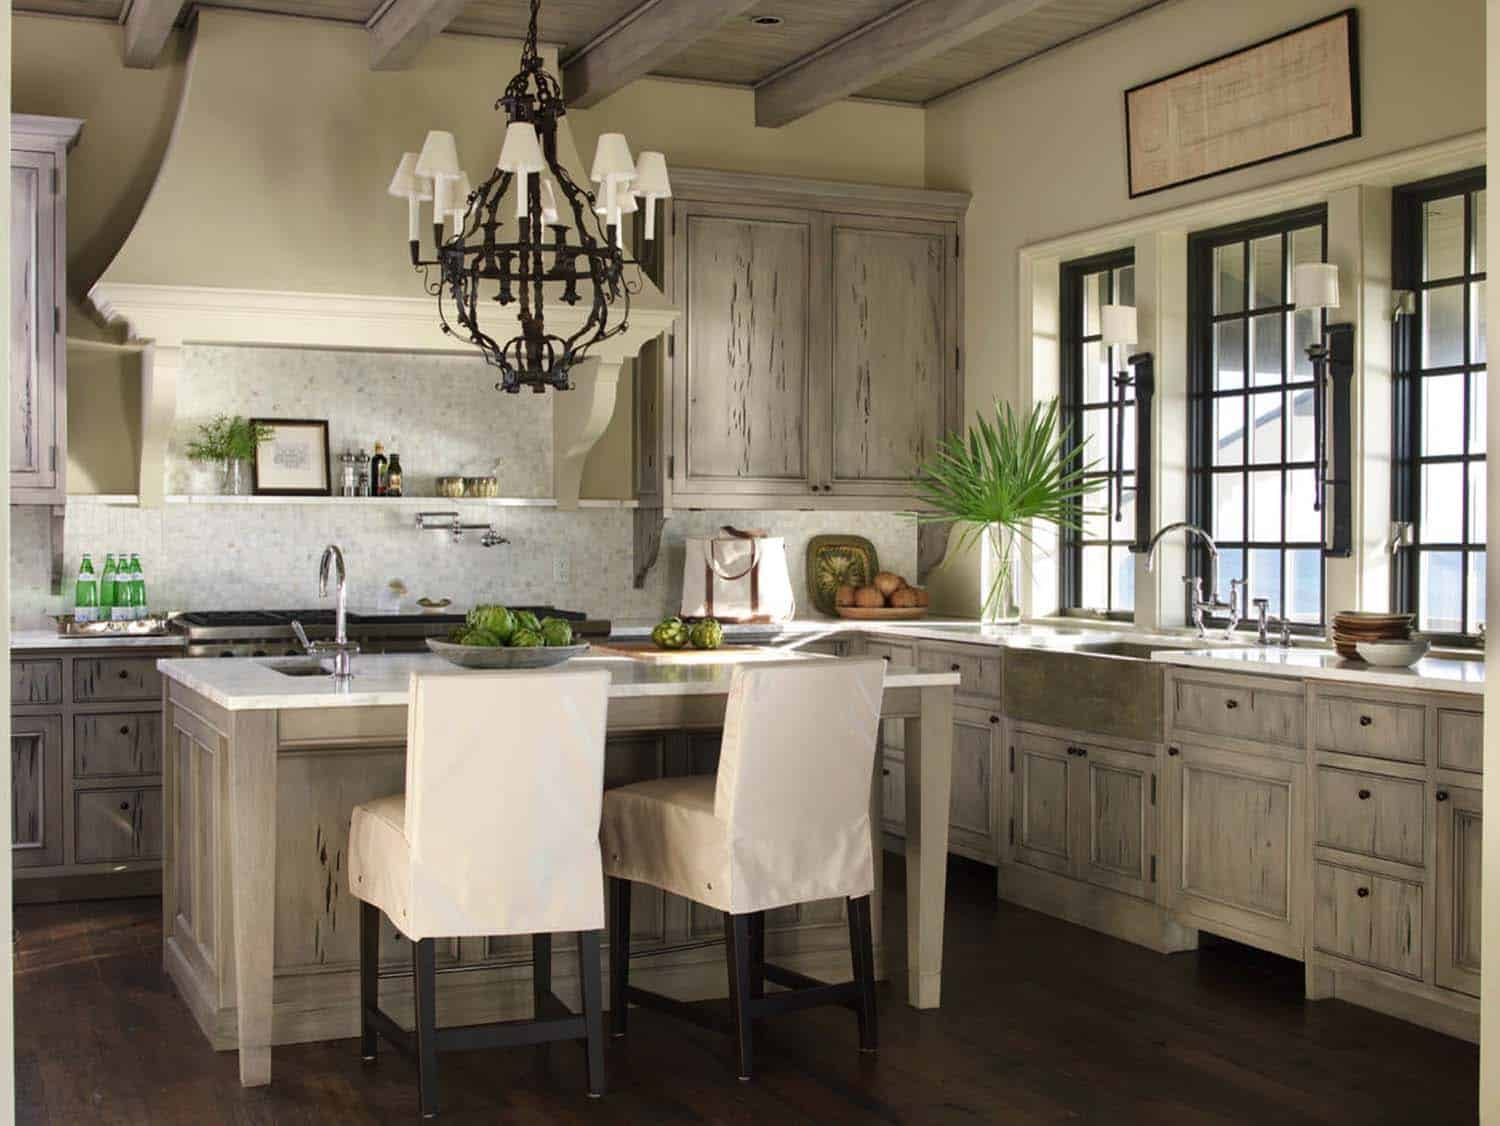 Beach House-McAlpine Booth-Ferrier Interiors-06-1 Kindesign